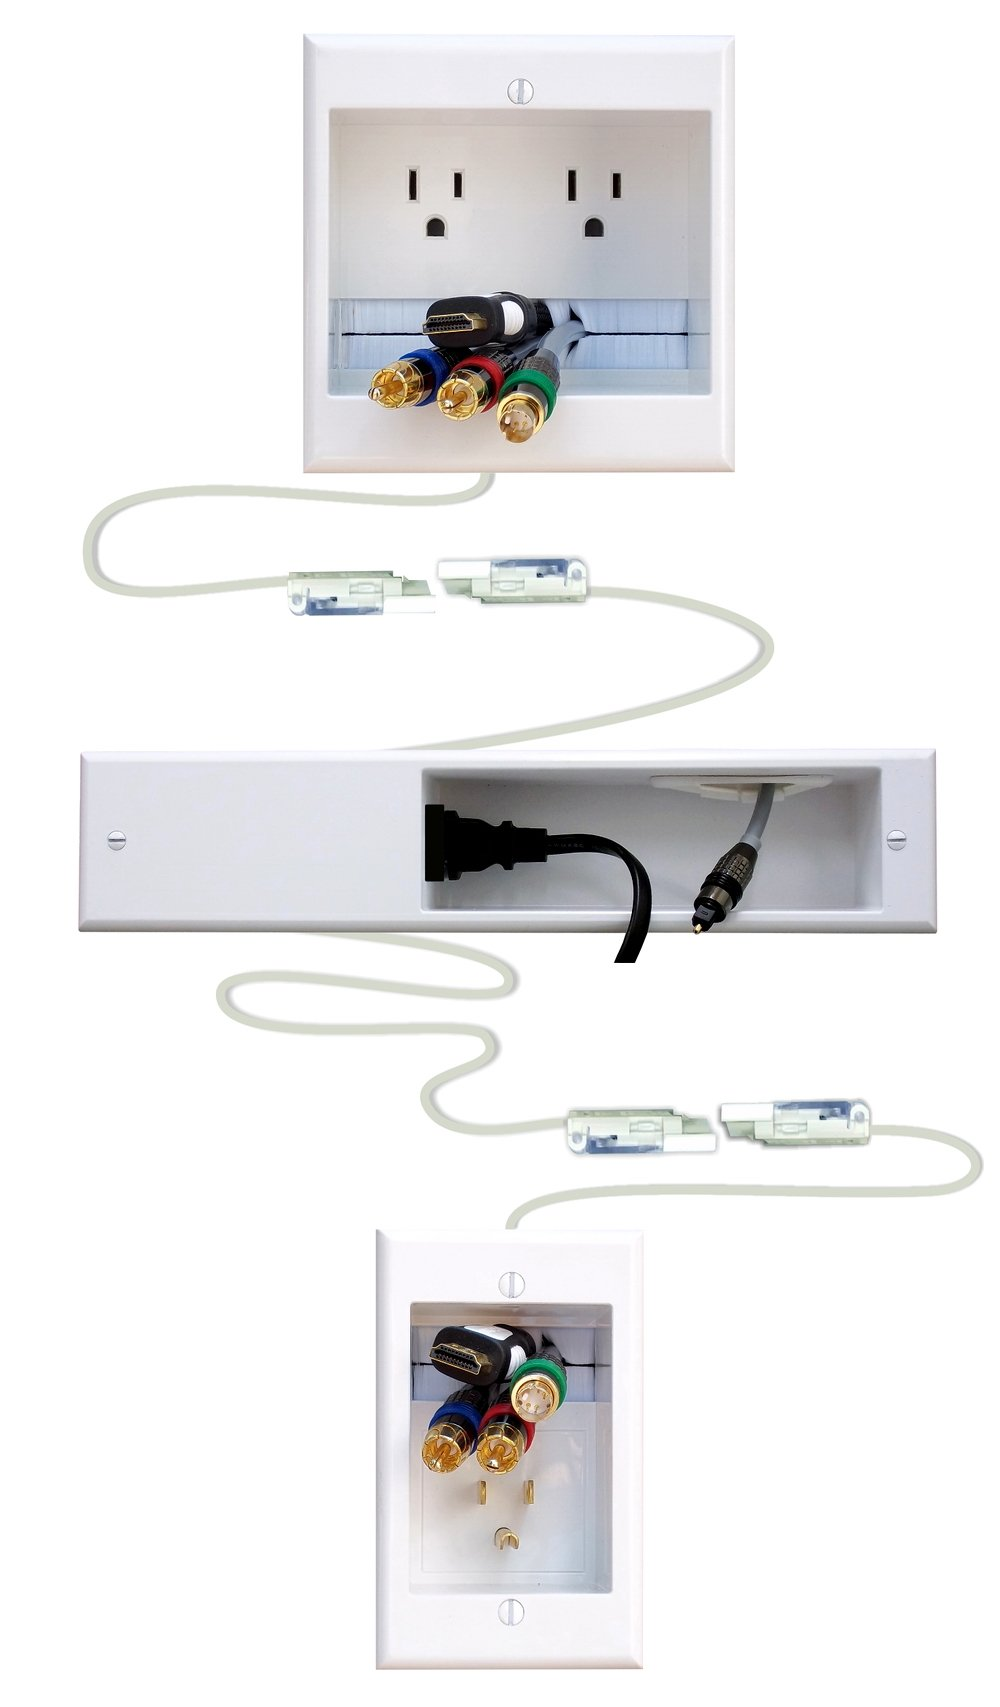 PowerBridge TWO-CK Dual Outlet for TV and Sound-Bar Recessed In-Wall Cable Management System Kit (TWOSB-CK) by PowerBridge Solutions (Image #2)